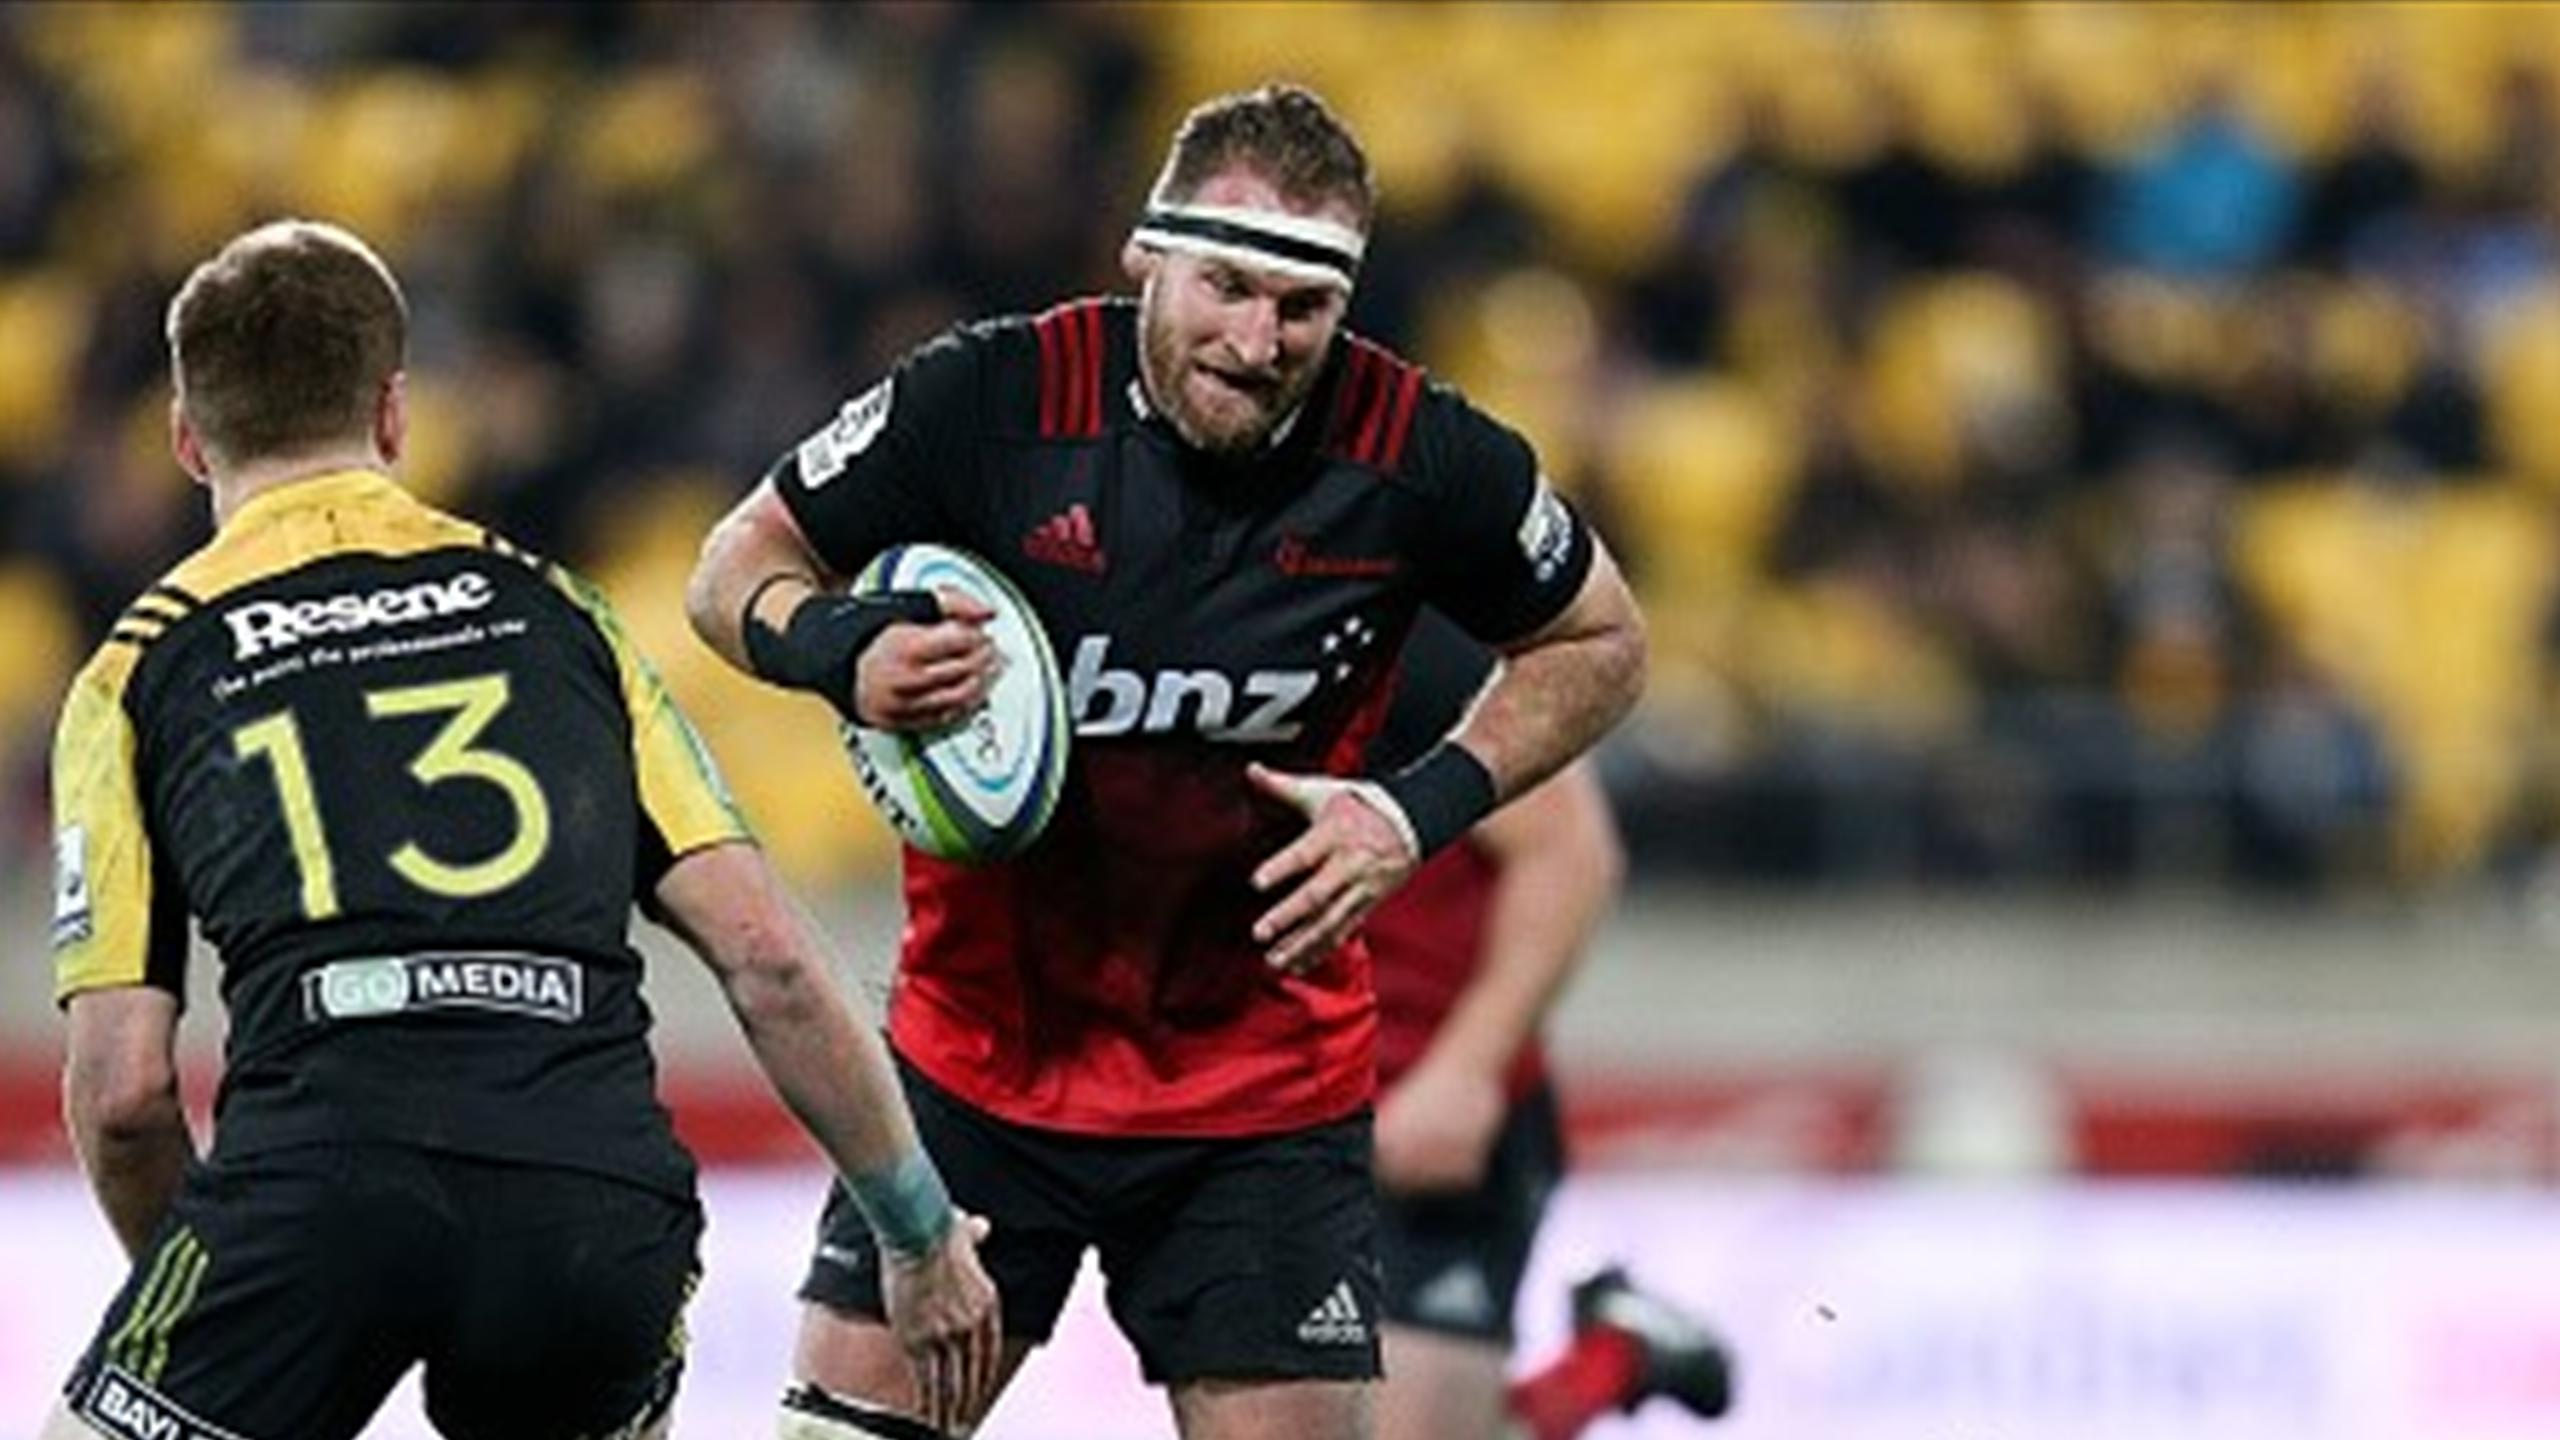 Super Rugby Calendrier.Super Rugby Les Crusaders Debutent Face Aux Chiefs Les